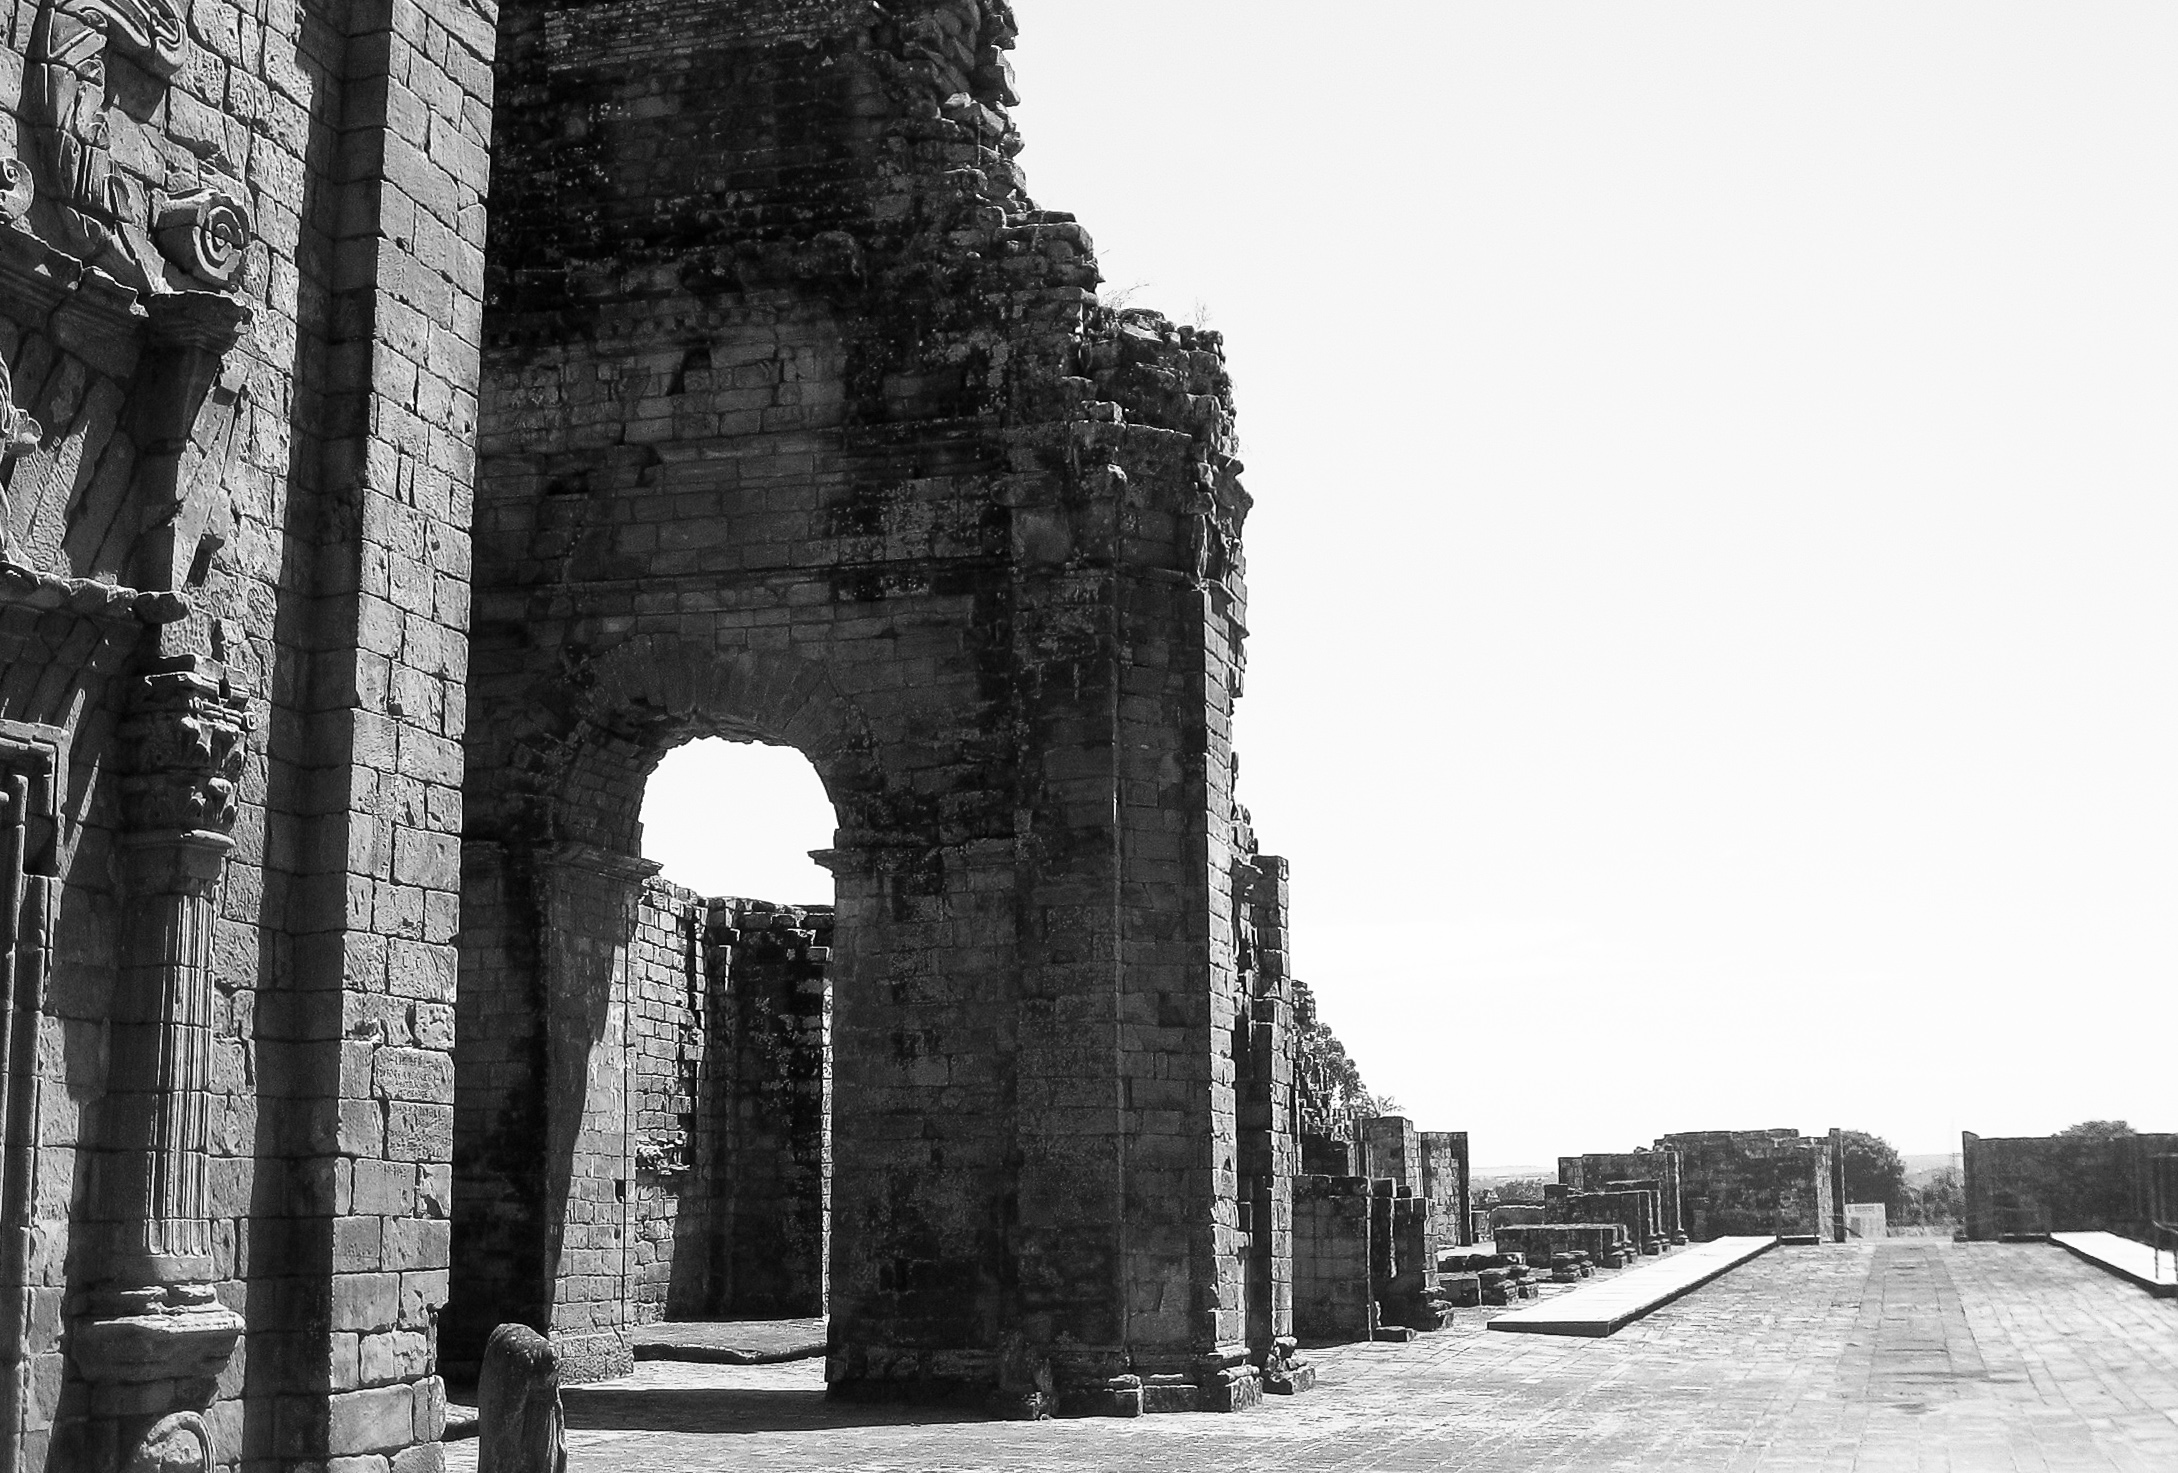 encarnacion_jesuit-missions-7595-section-of-ruin-with-arch.jpg